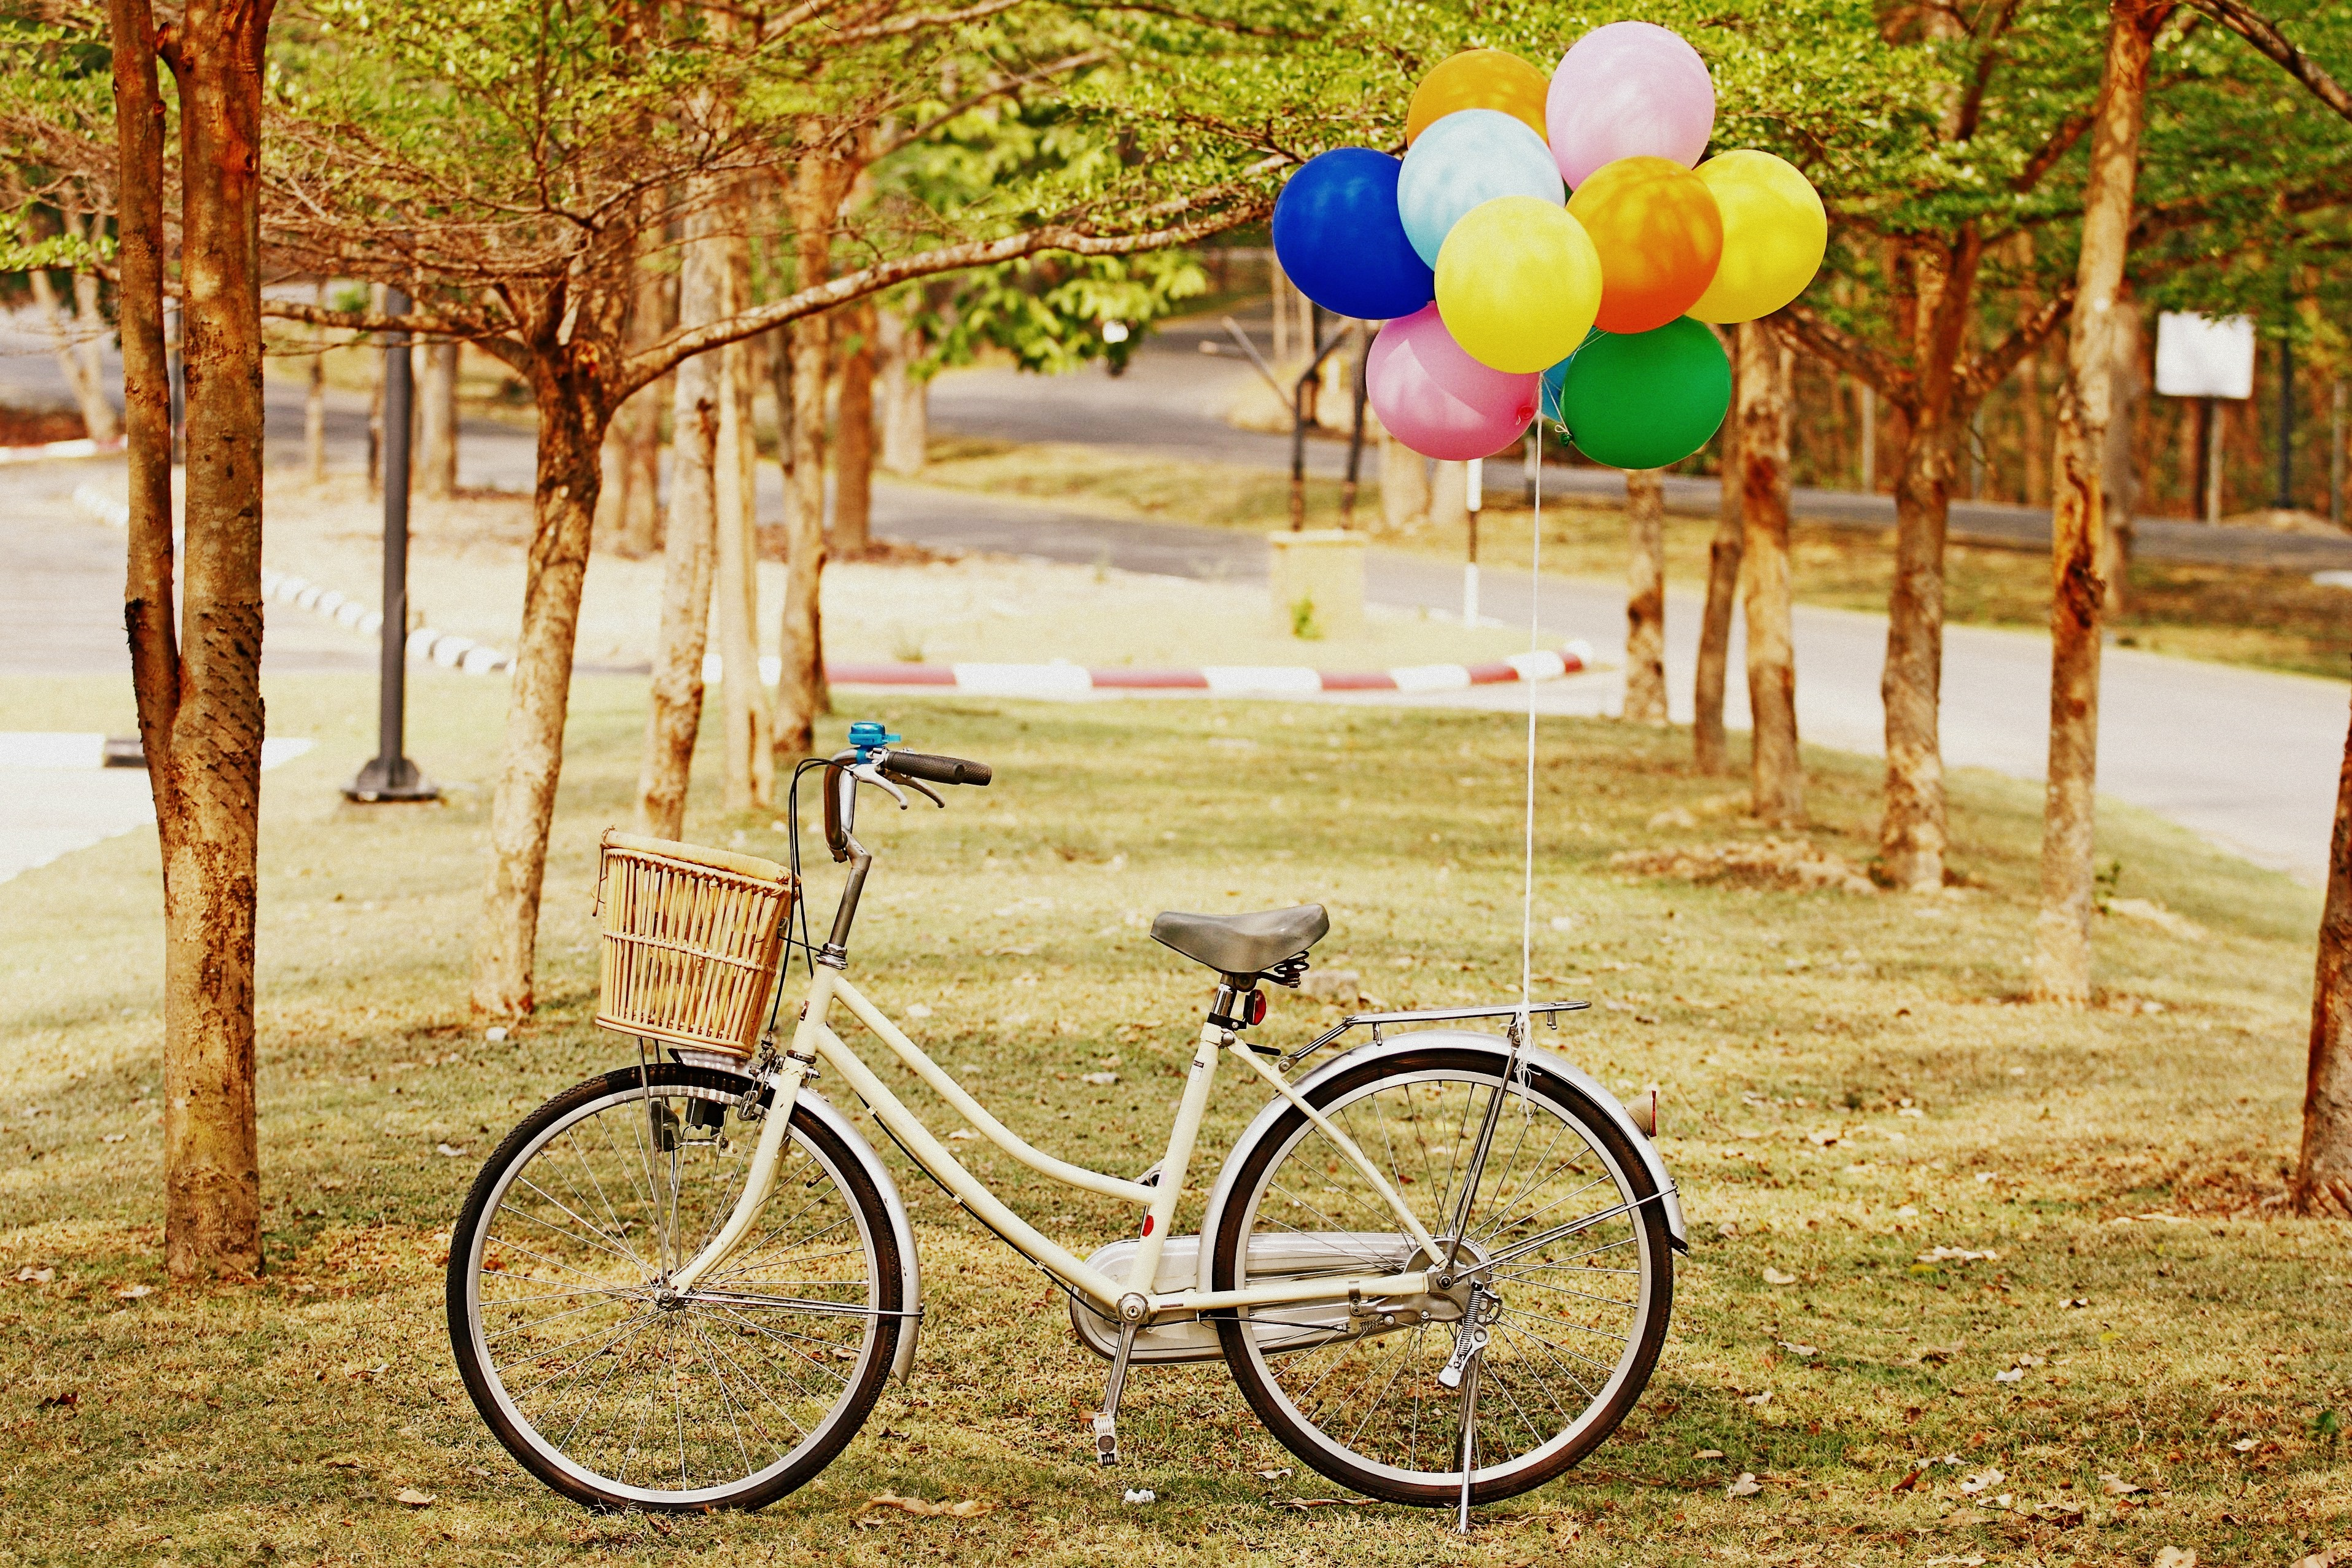 111587 download wallpaper Balloons, Grass, Miscellanea, Miscellaneous, Park, Bicycle, Air Balloons screensavers and pictures for free